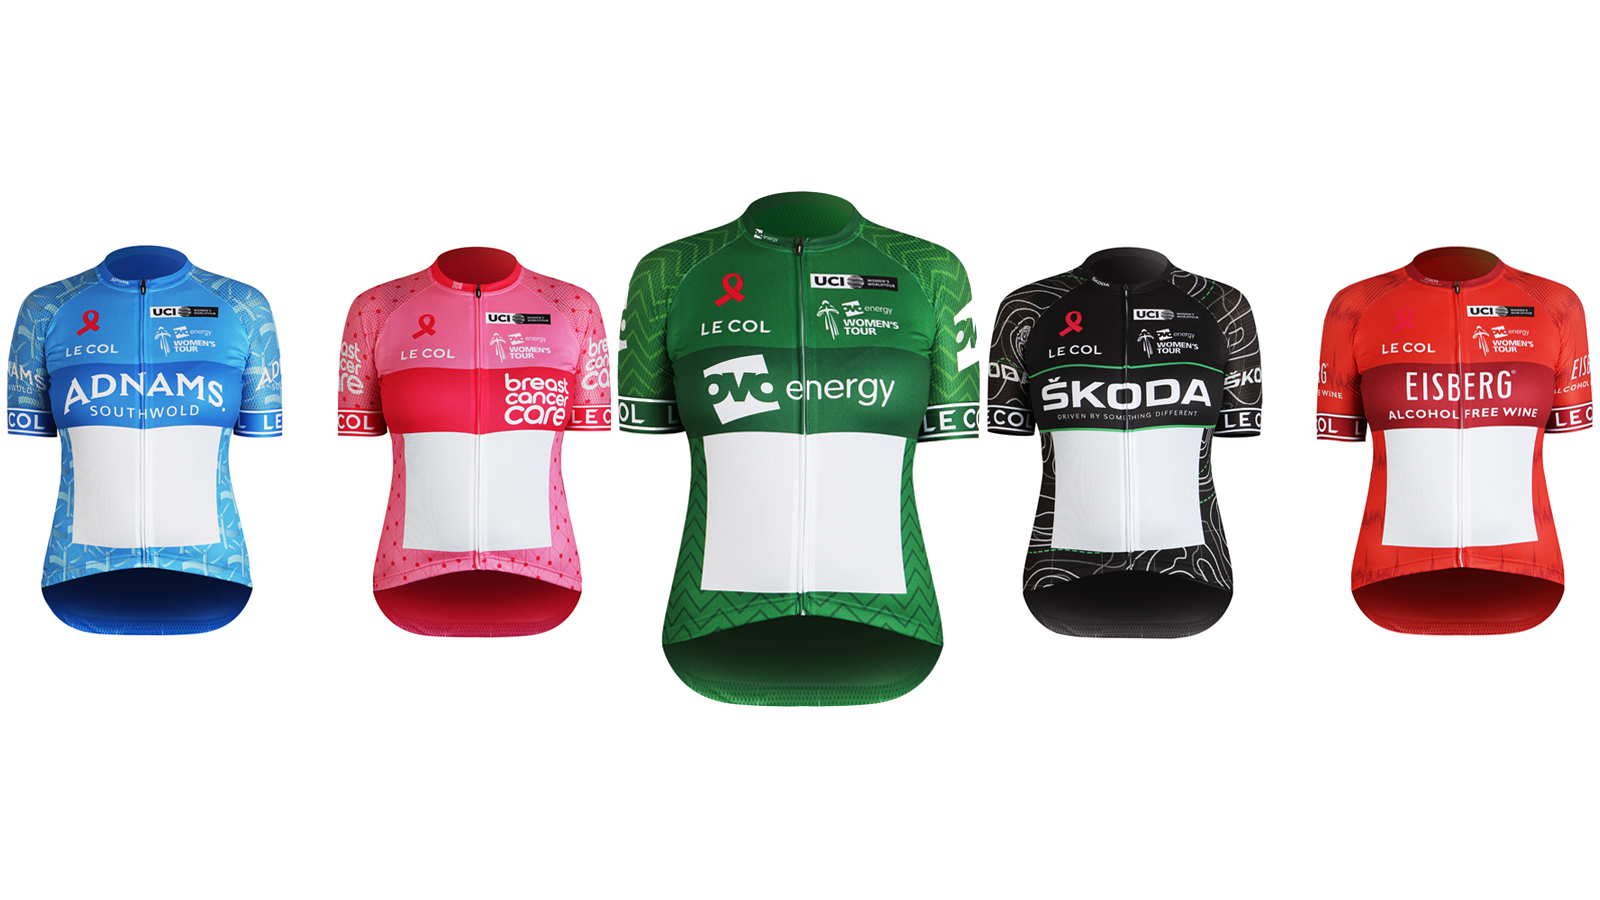 2018 Le Col Leaders' Jerseys revealed